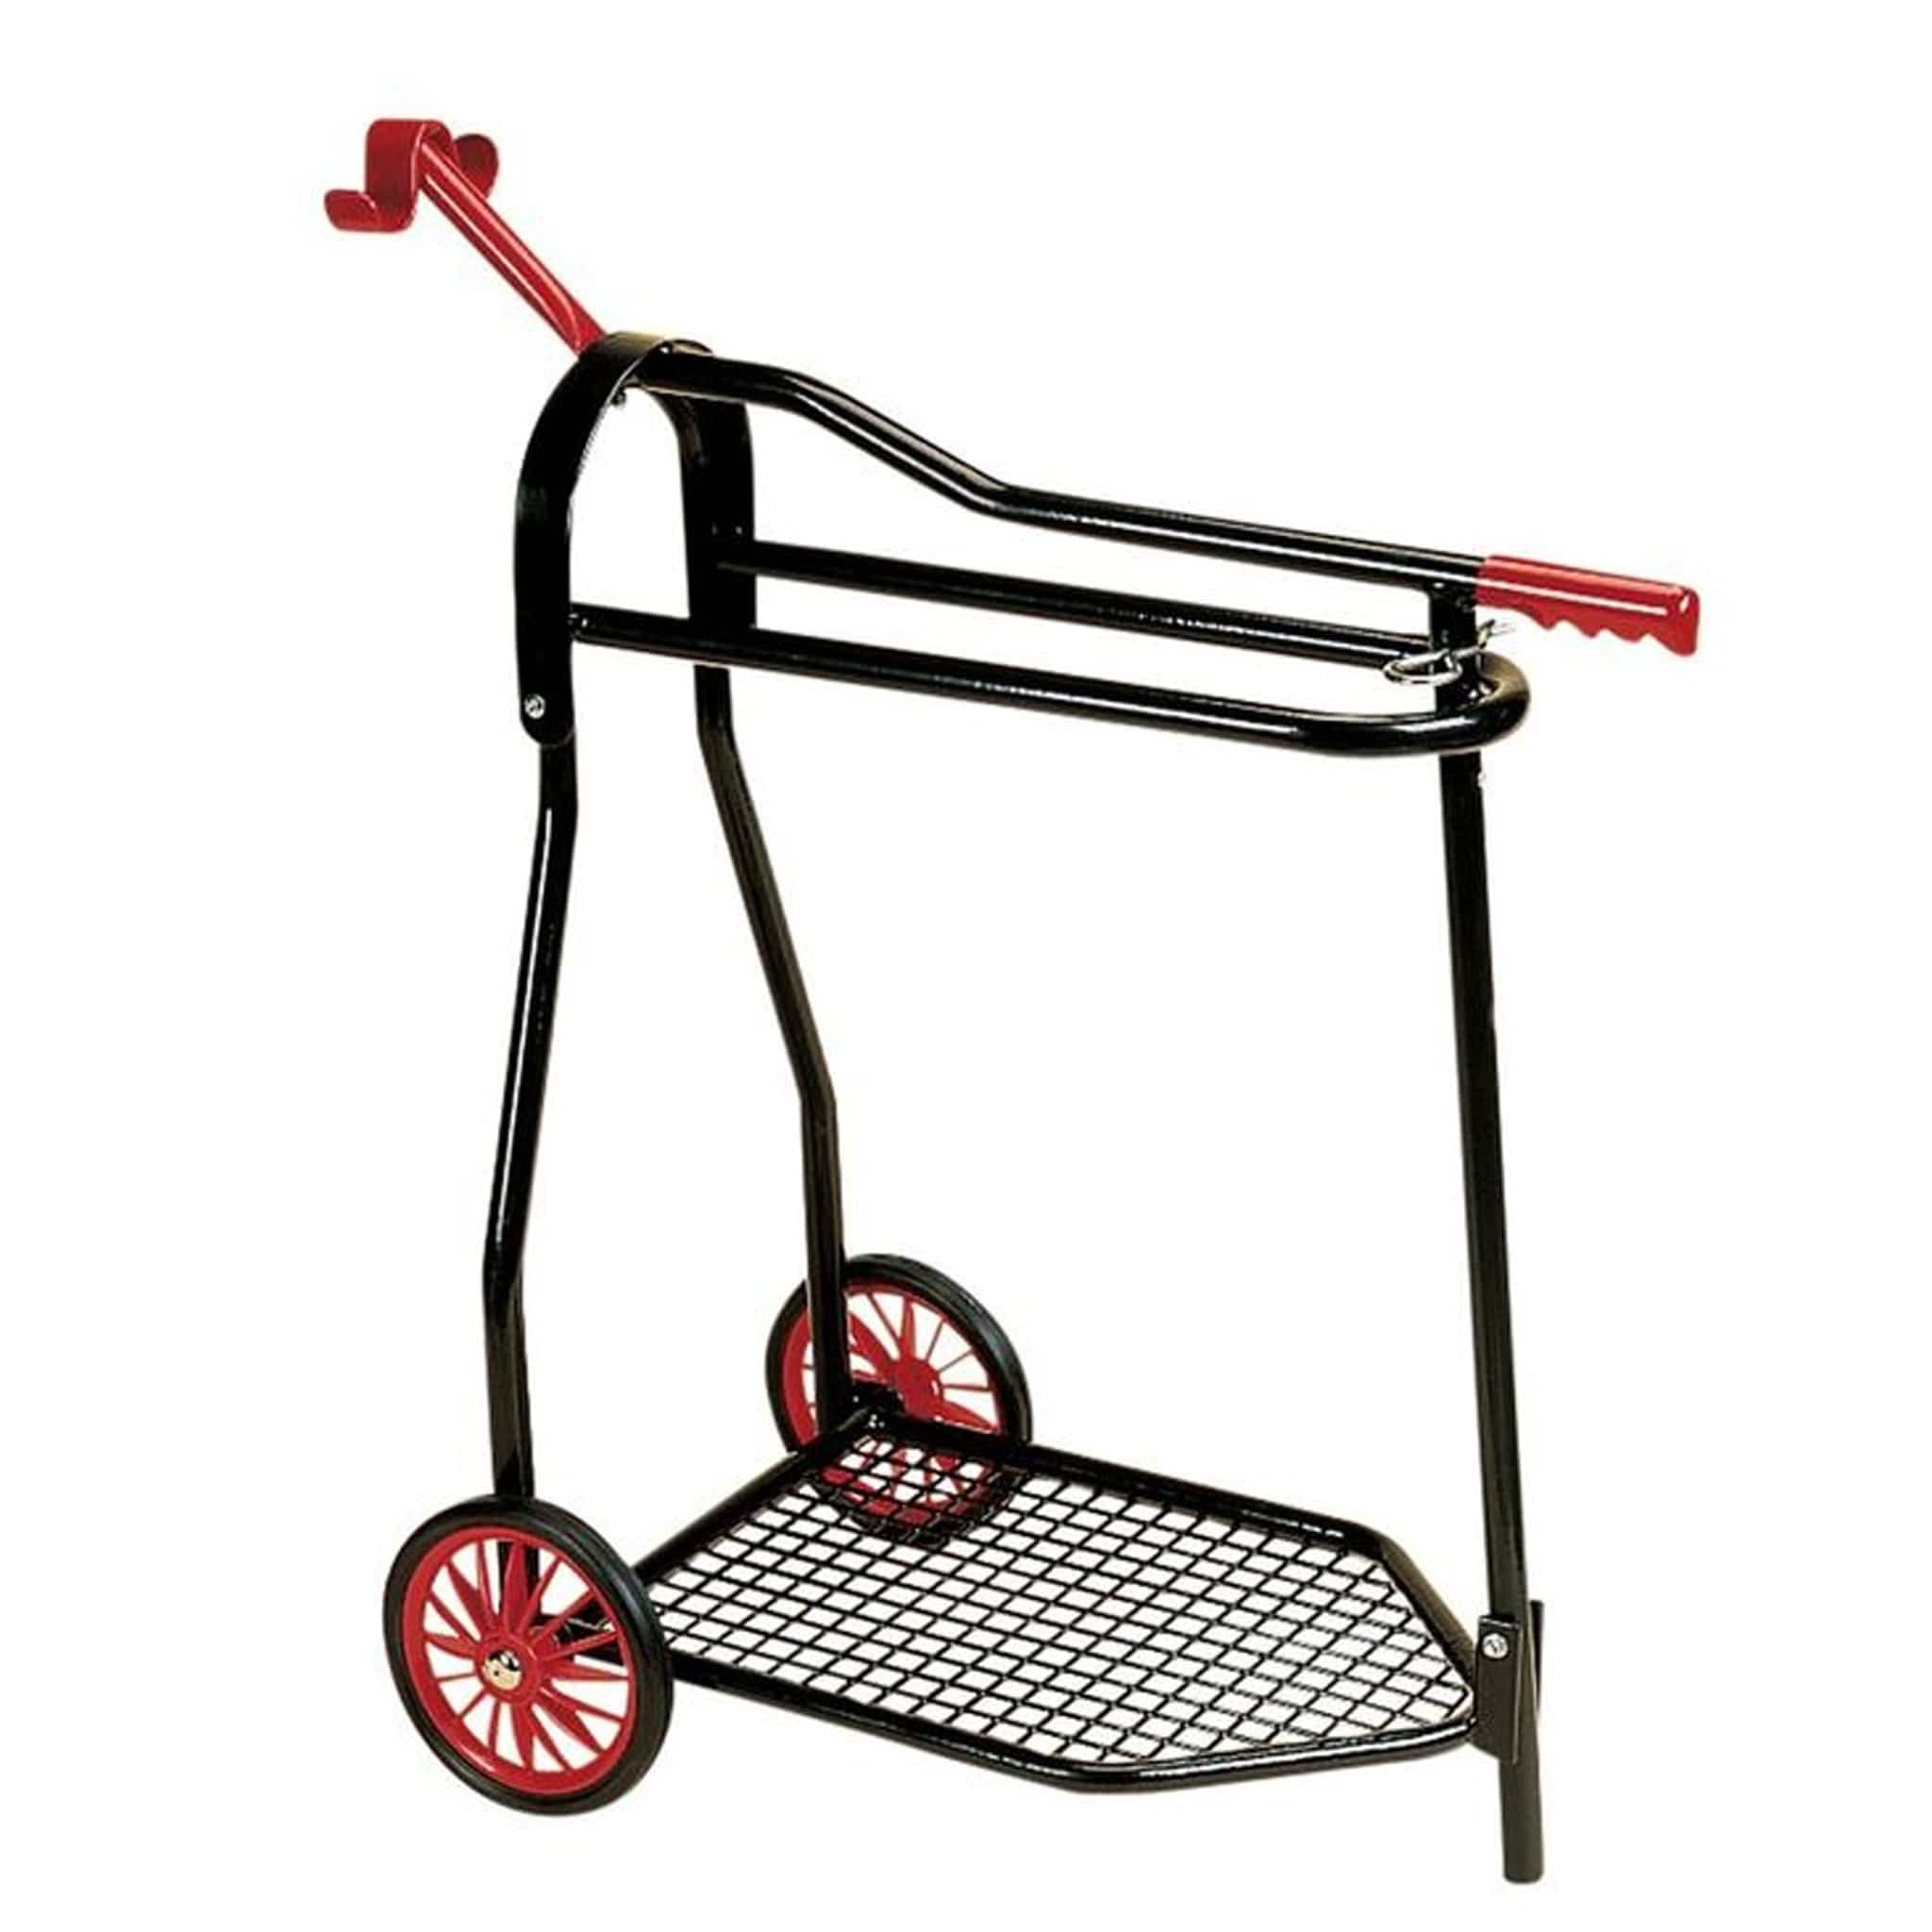 Stubbs Collapsible Tack Trolley STB0505